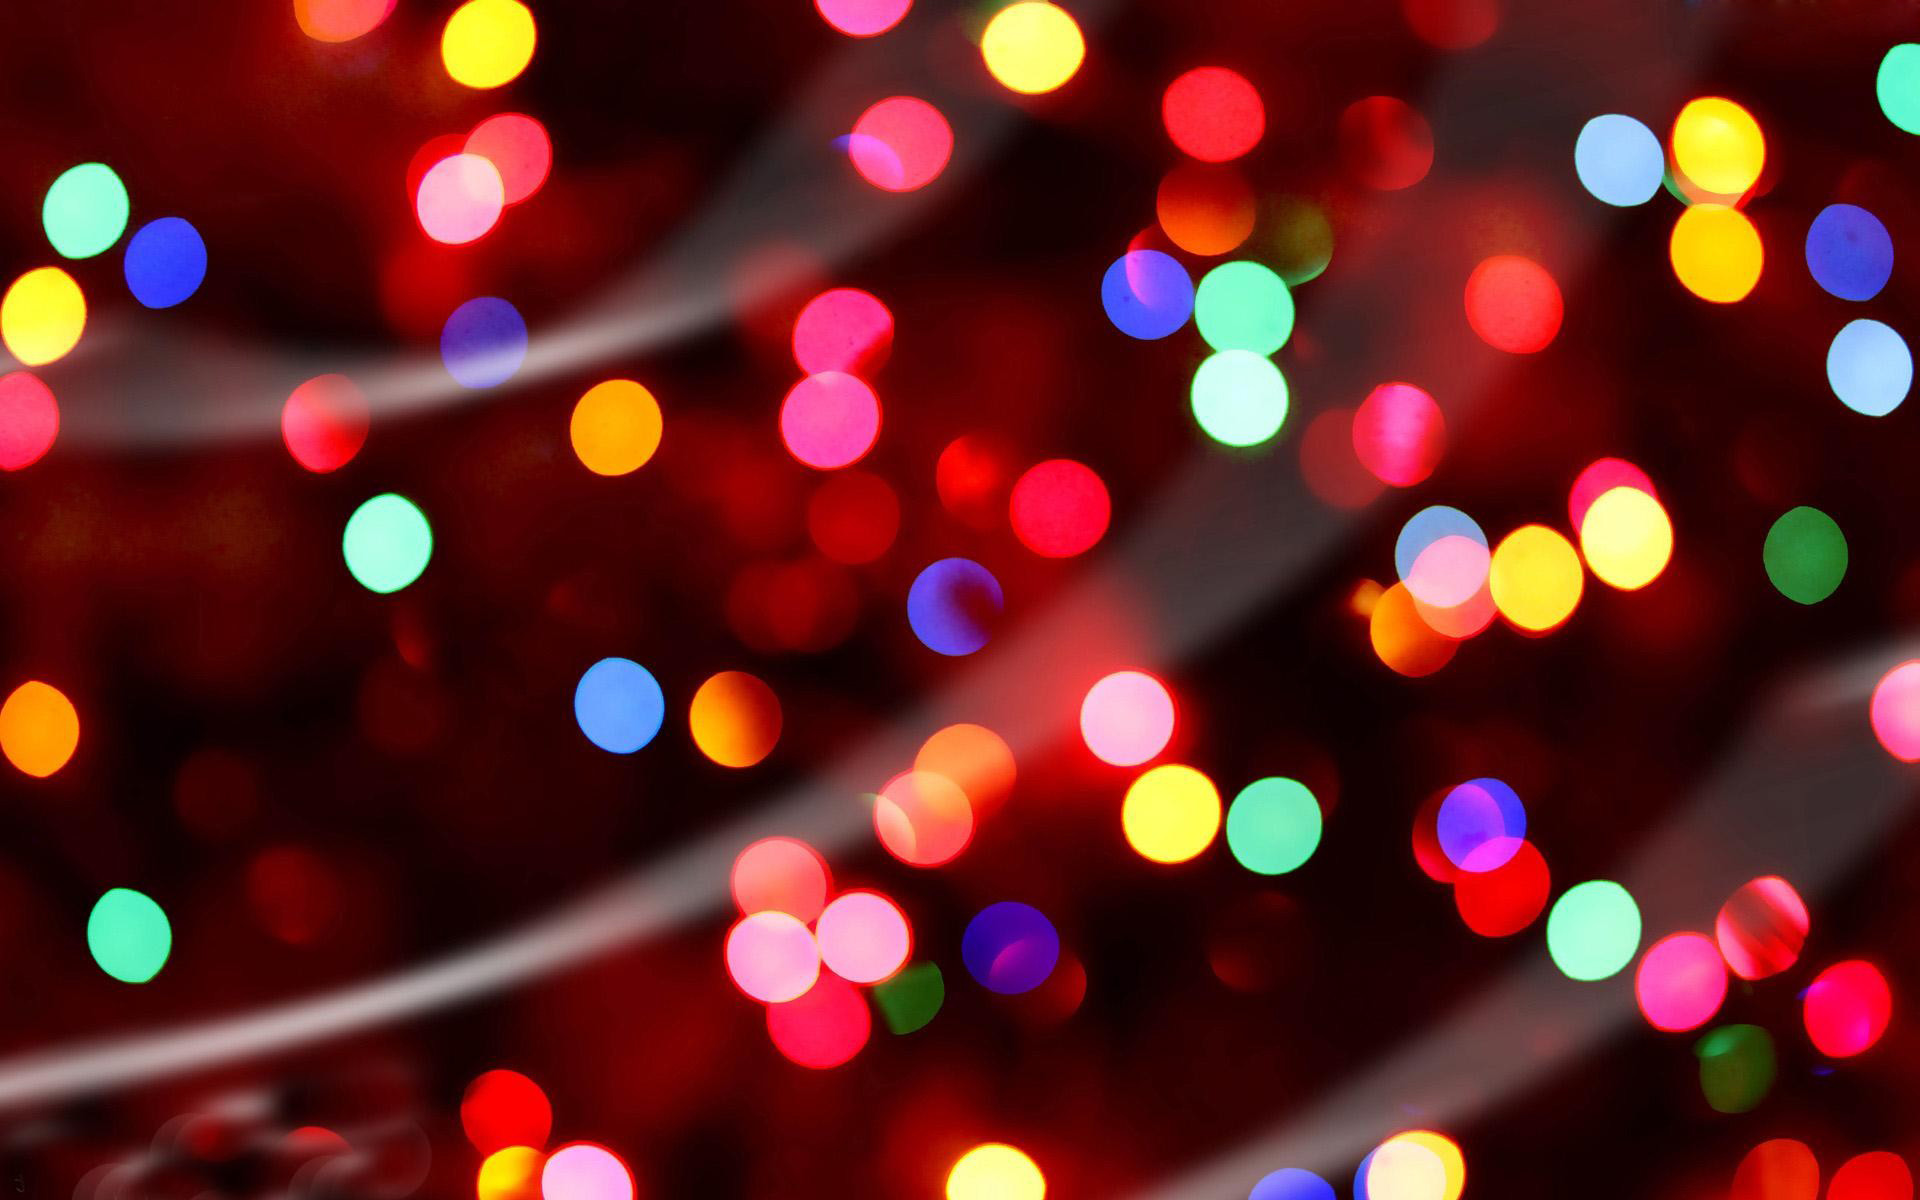 christmas light background 43 pictures christmas light background 43 pictures